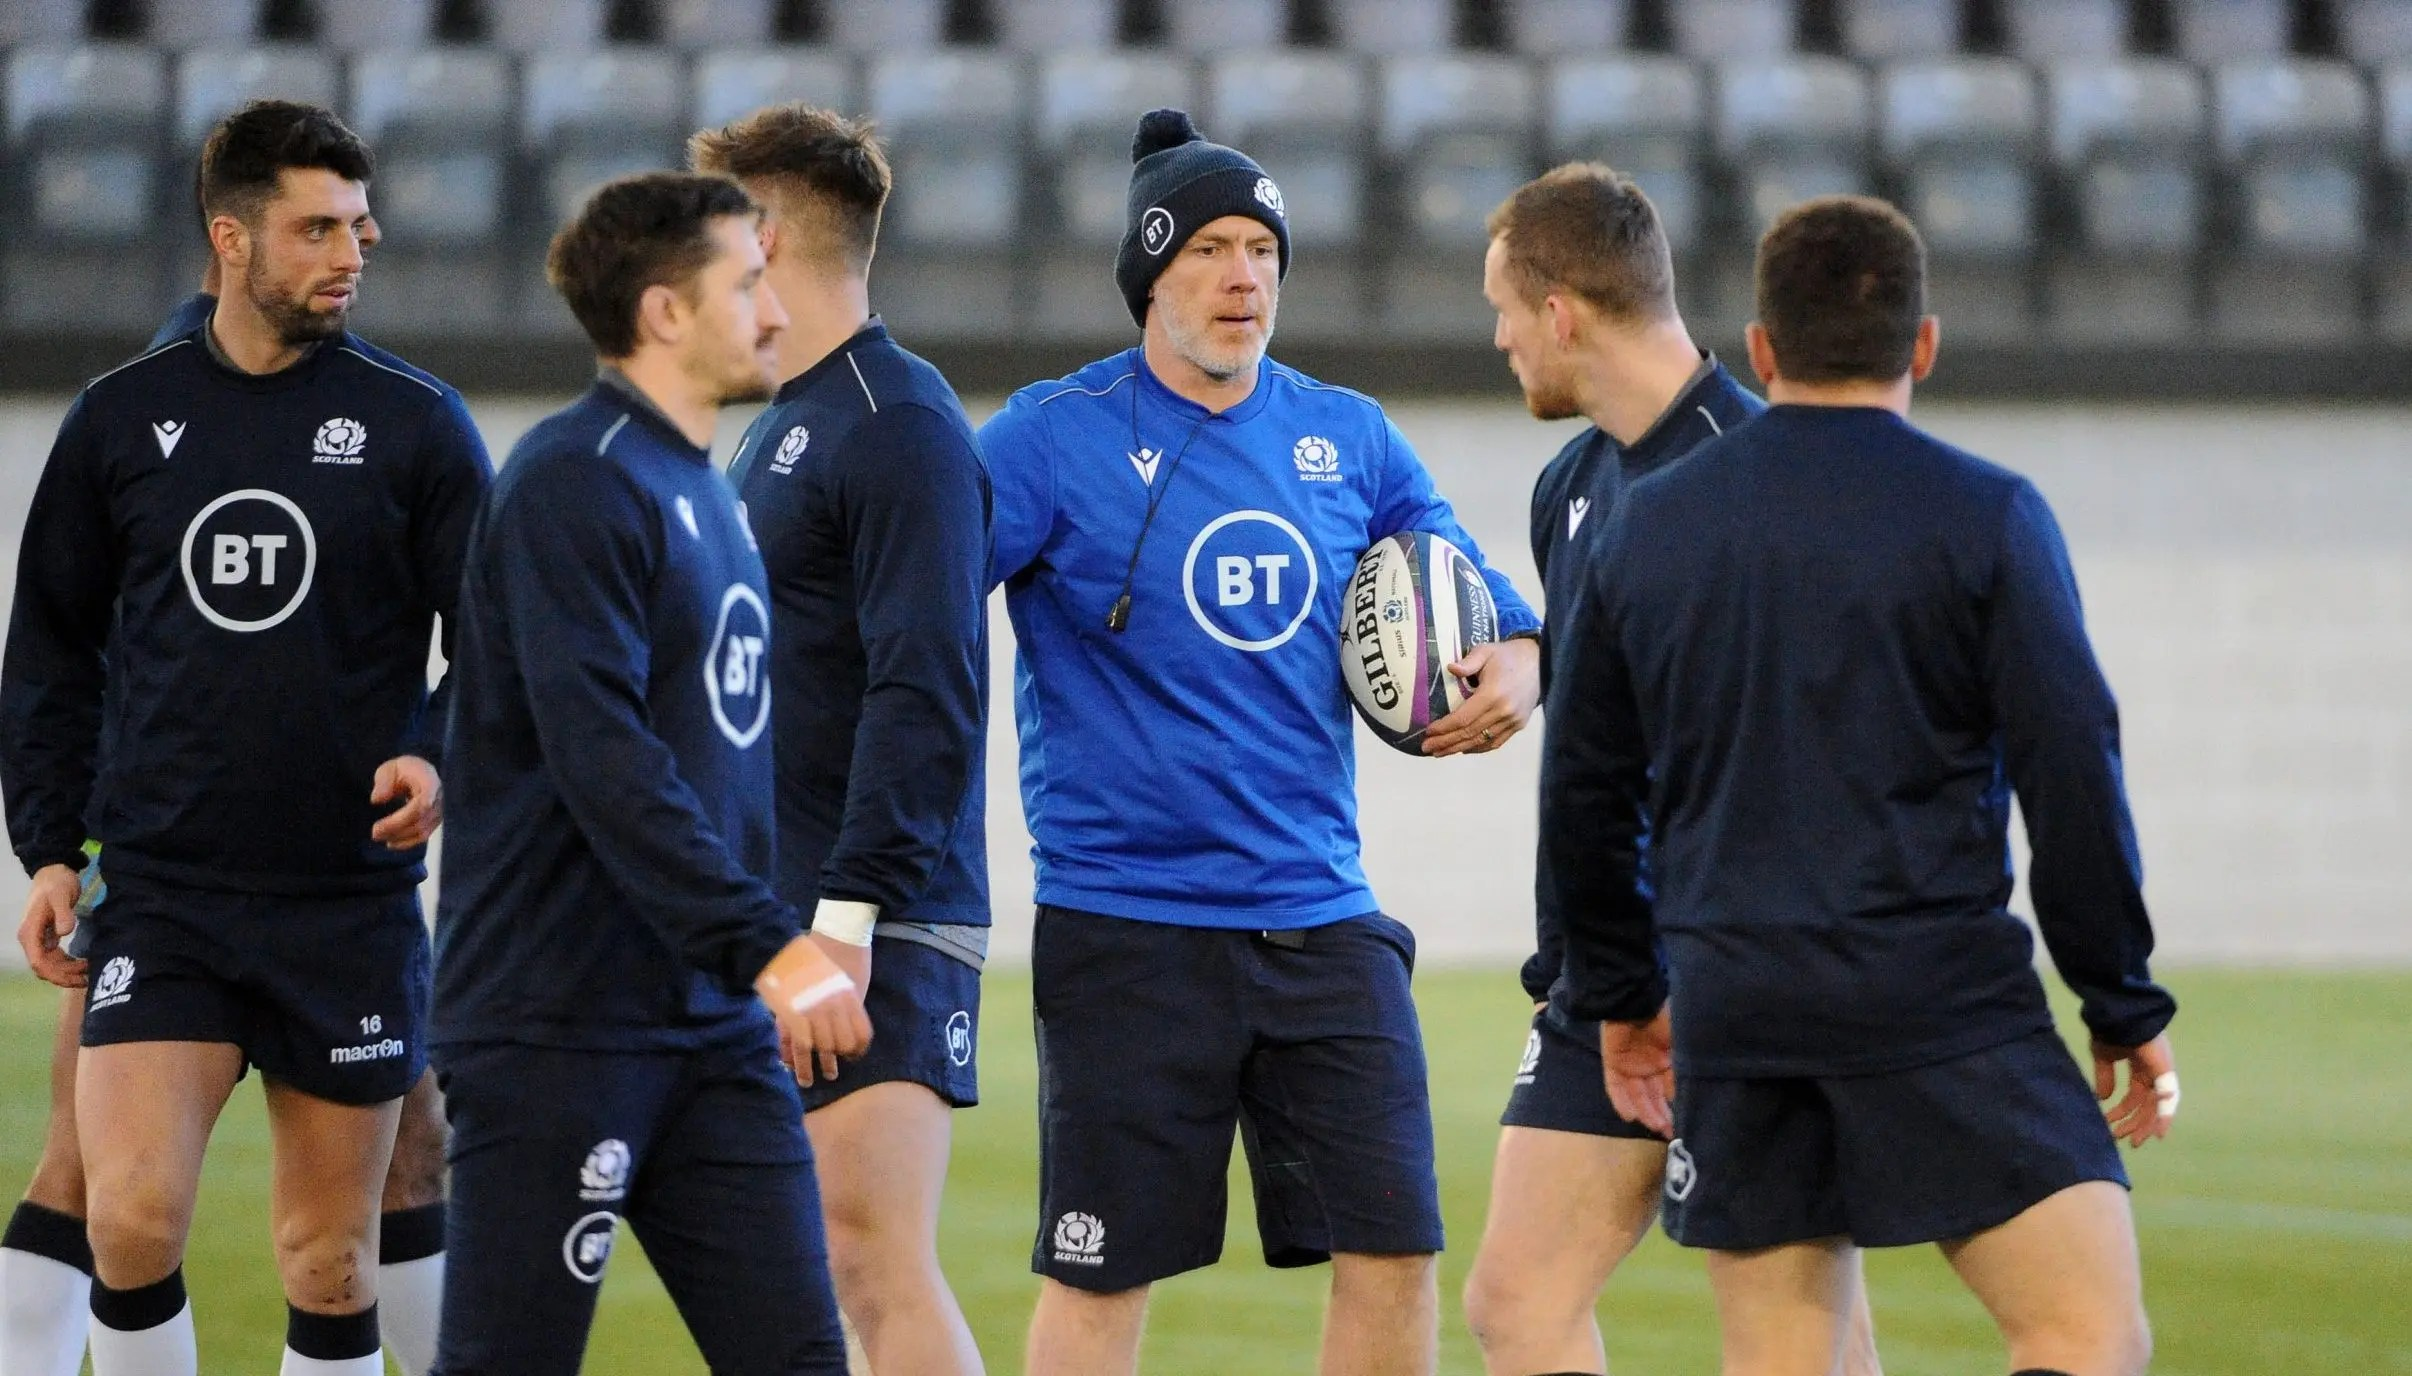 Scotland v England: Townsend and Russell in dialogue, says Steve Tandy